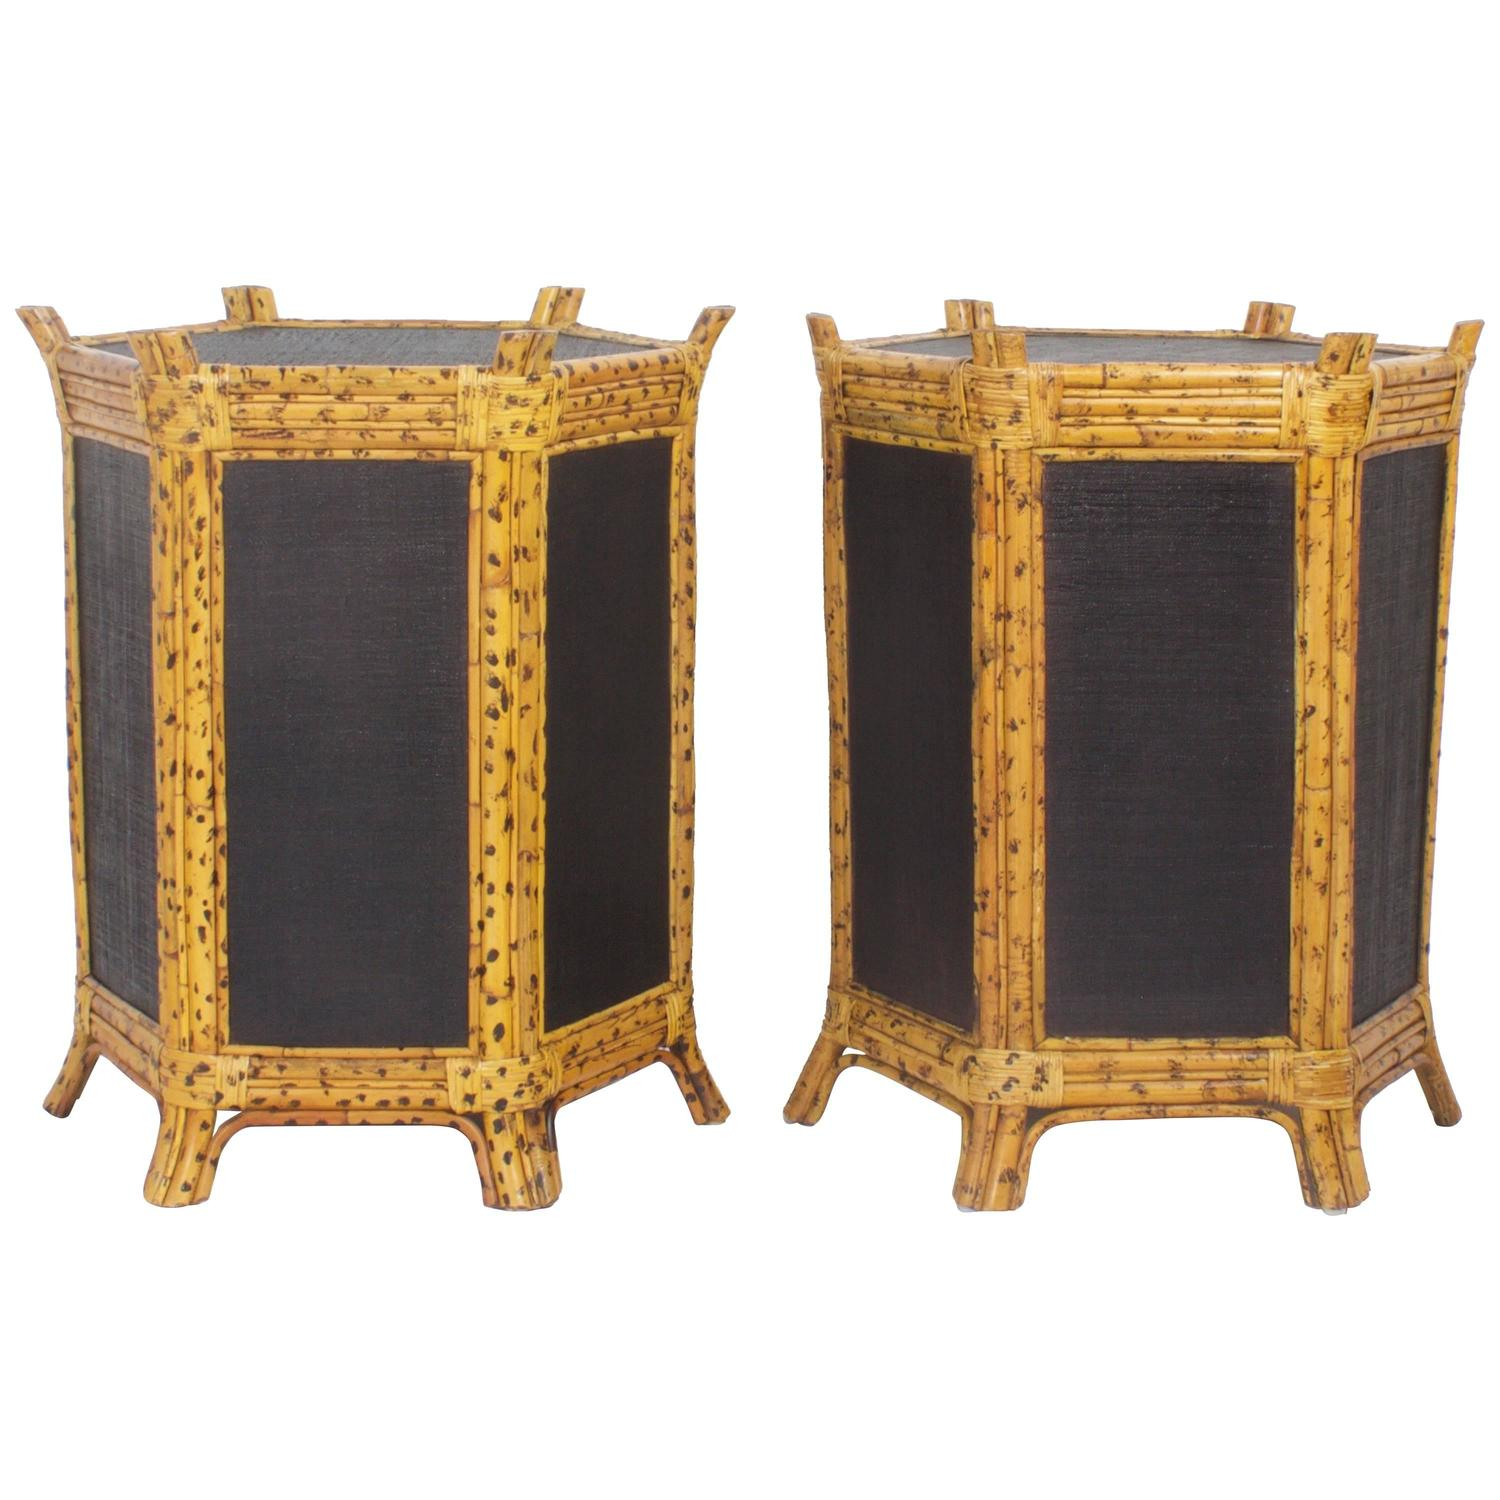 Bamboo Tortoise Coffee Table: Pair Of Faux Tortoise Shell Bamboo Tables At 1stdibs